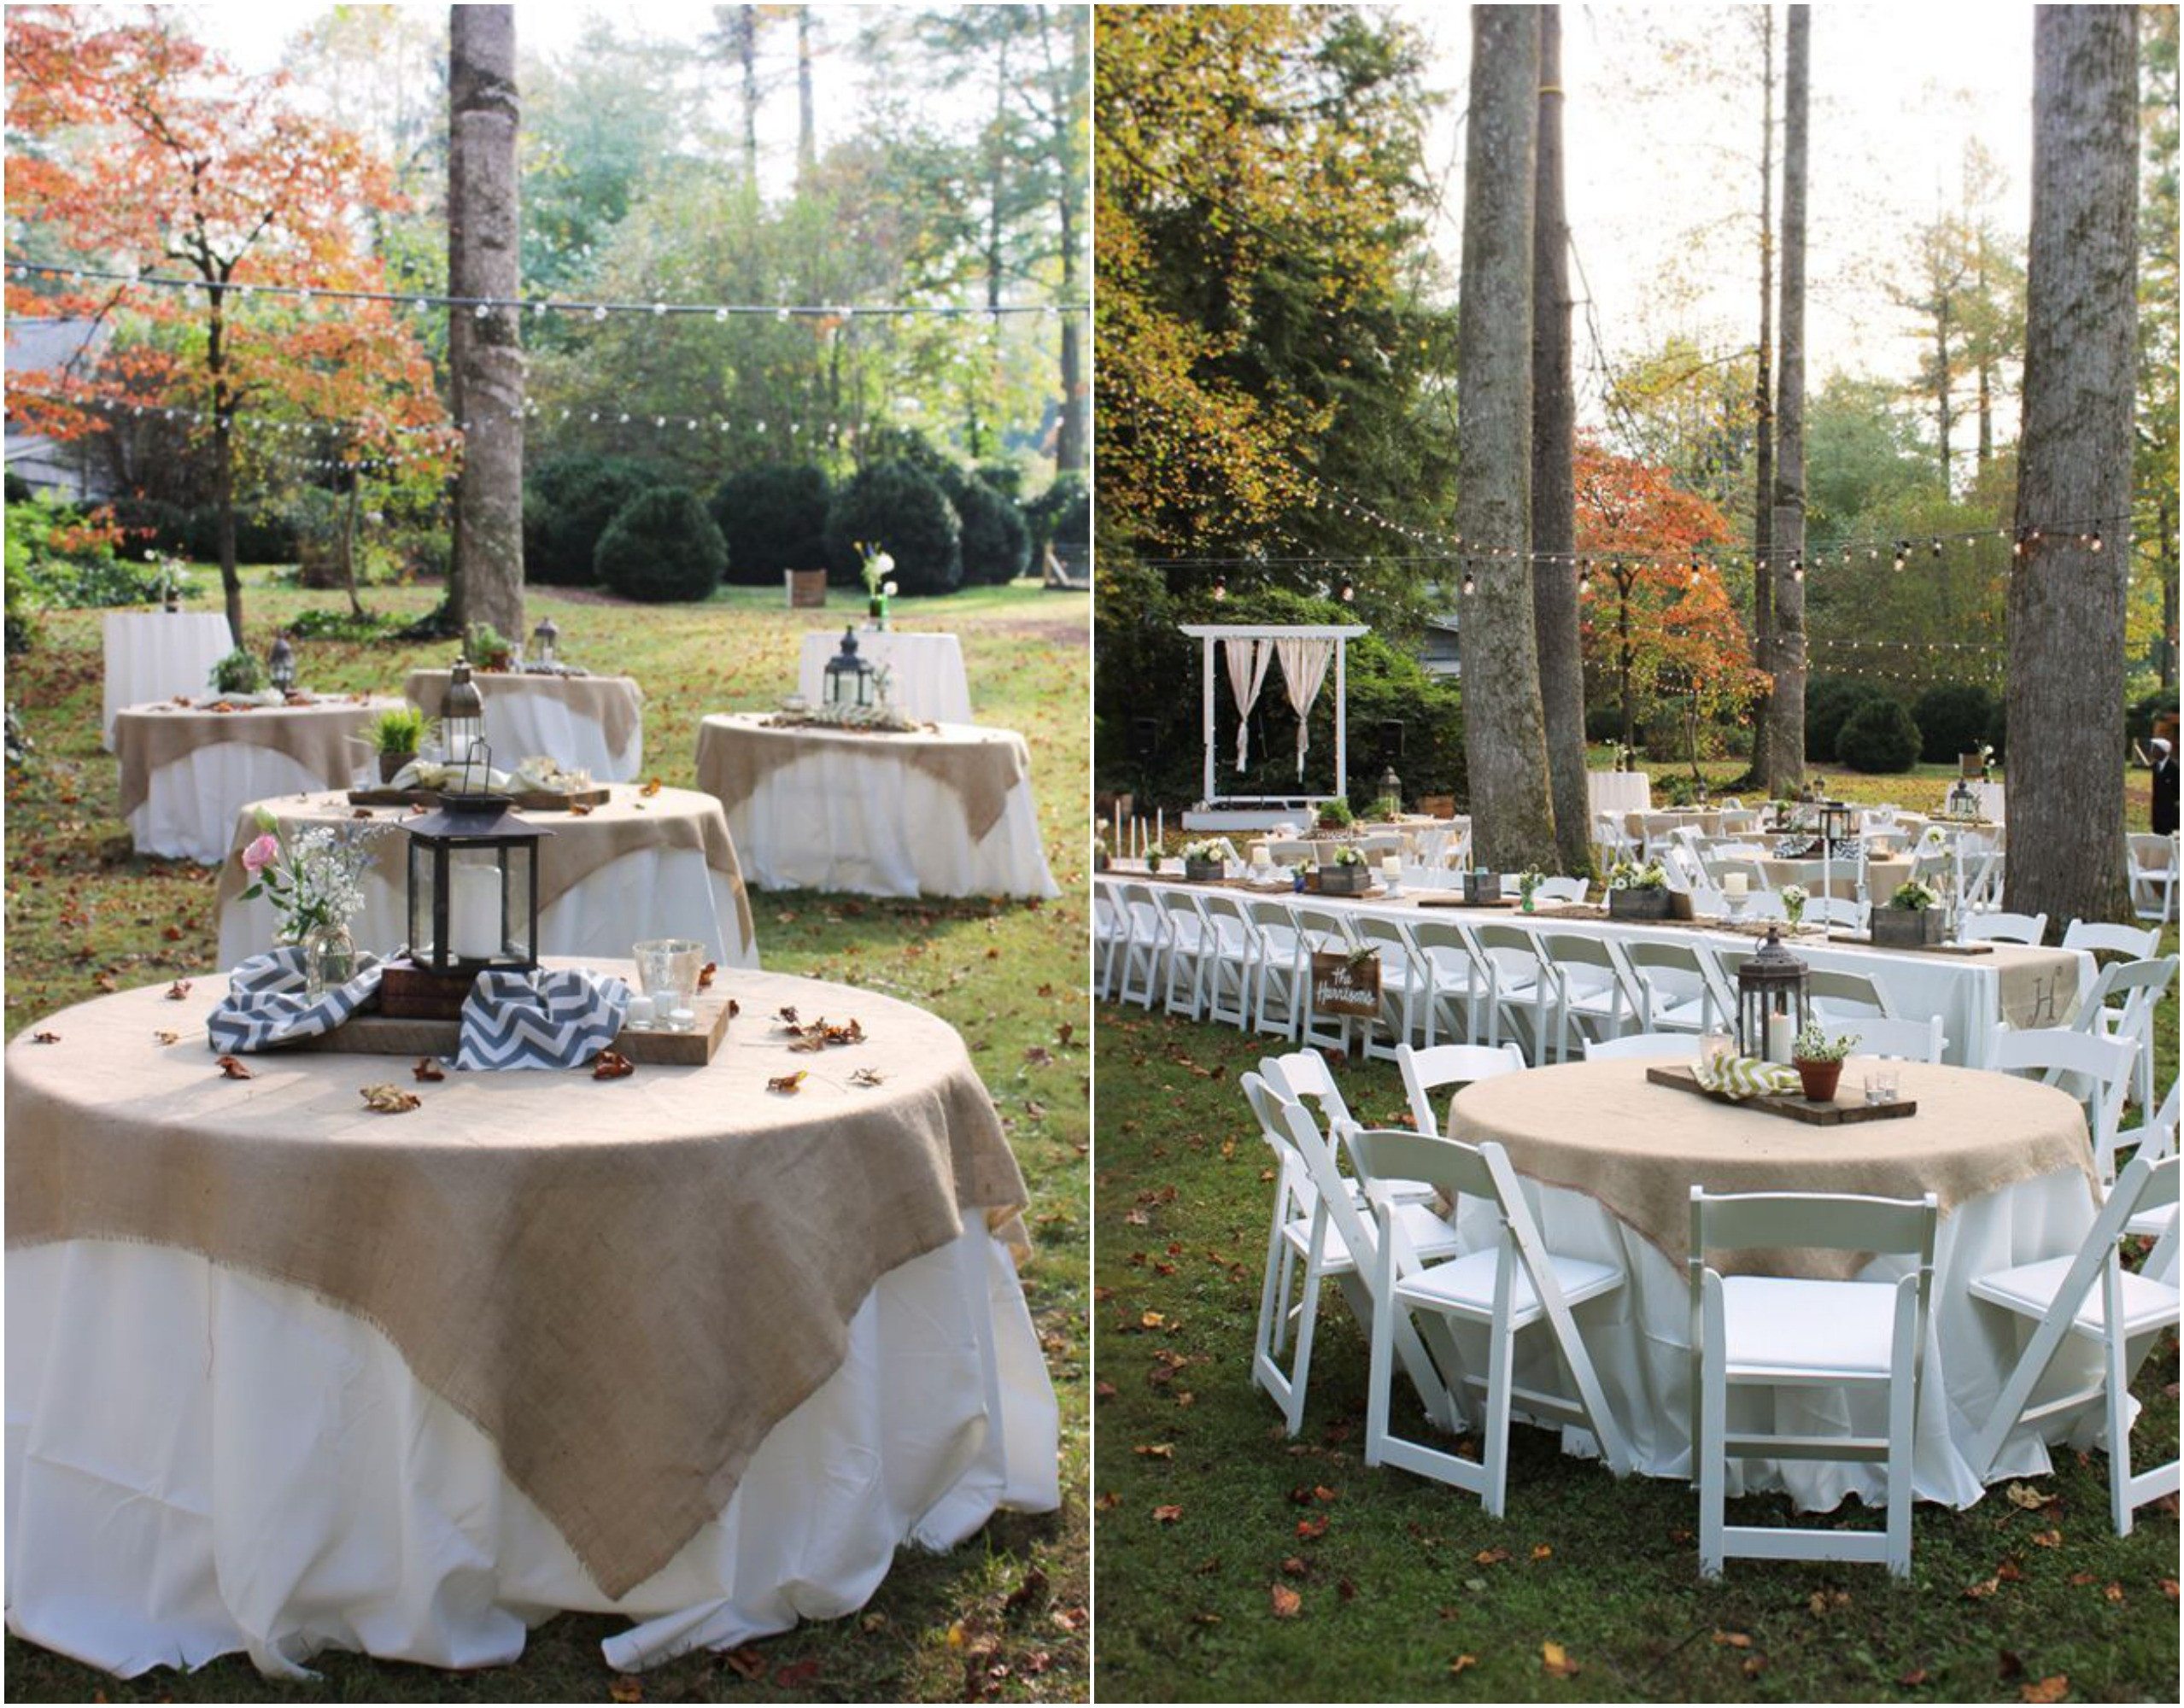 Wedding Table Decorations Lovely Rustic Vintage Backyard Wedding Emily Hearn Rustic Of Delightful 41 Ideas Wedding Table Decorations